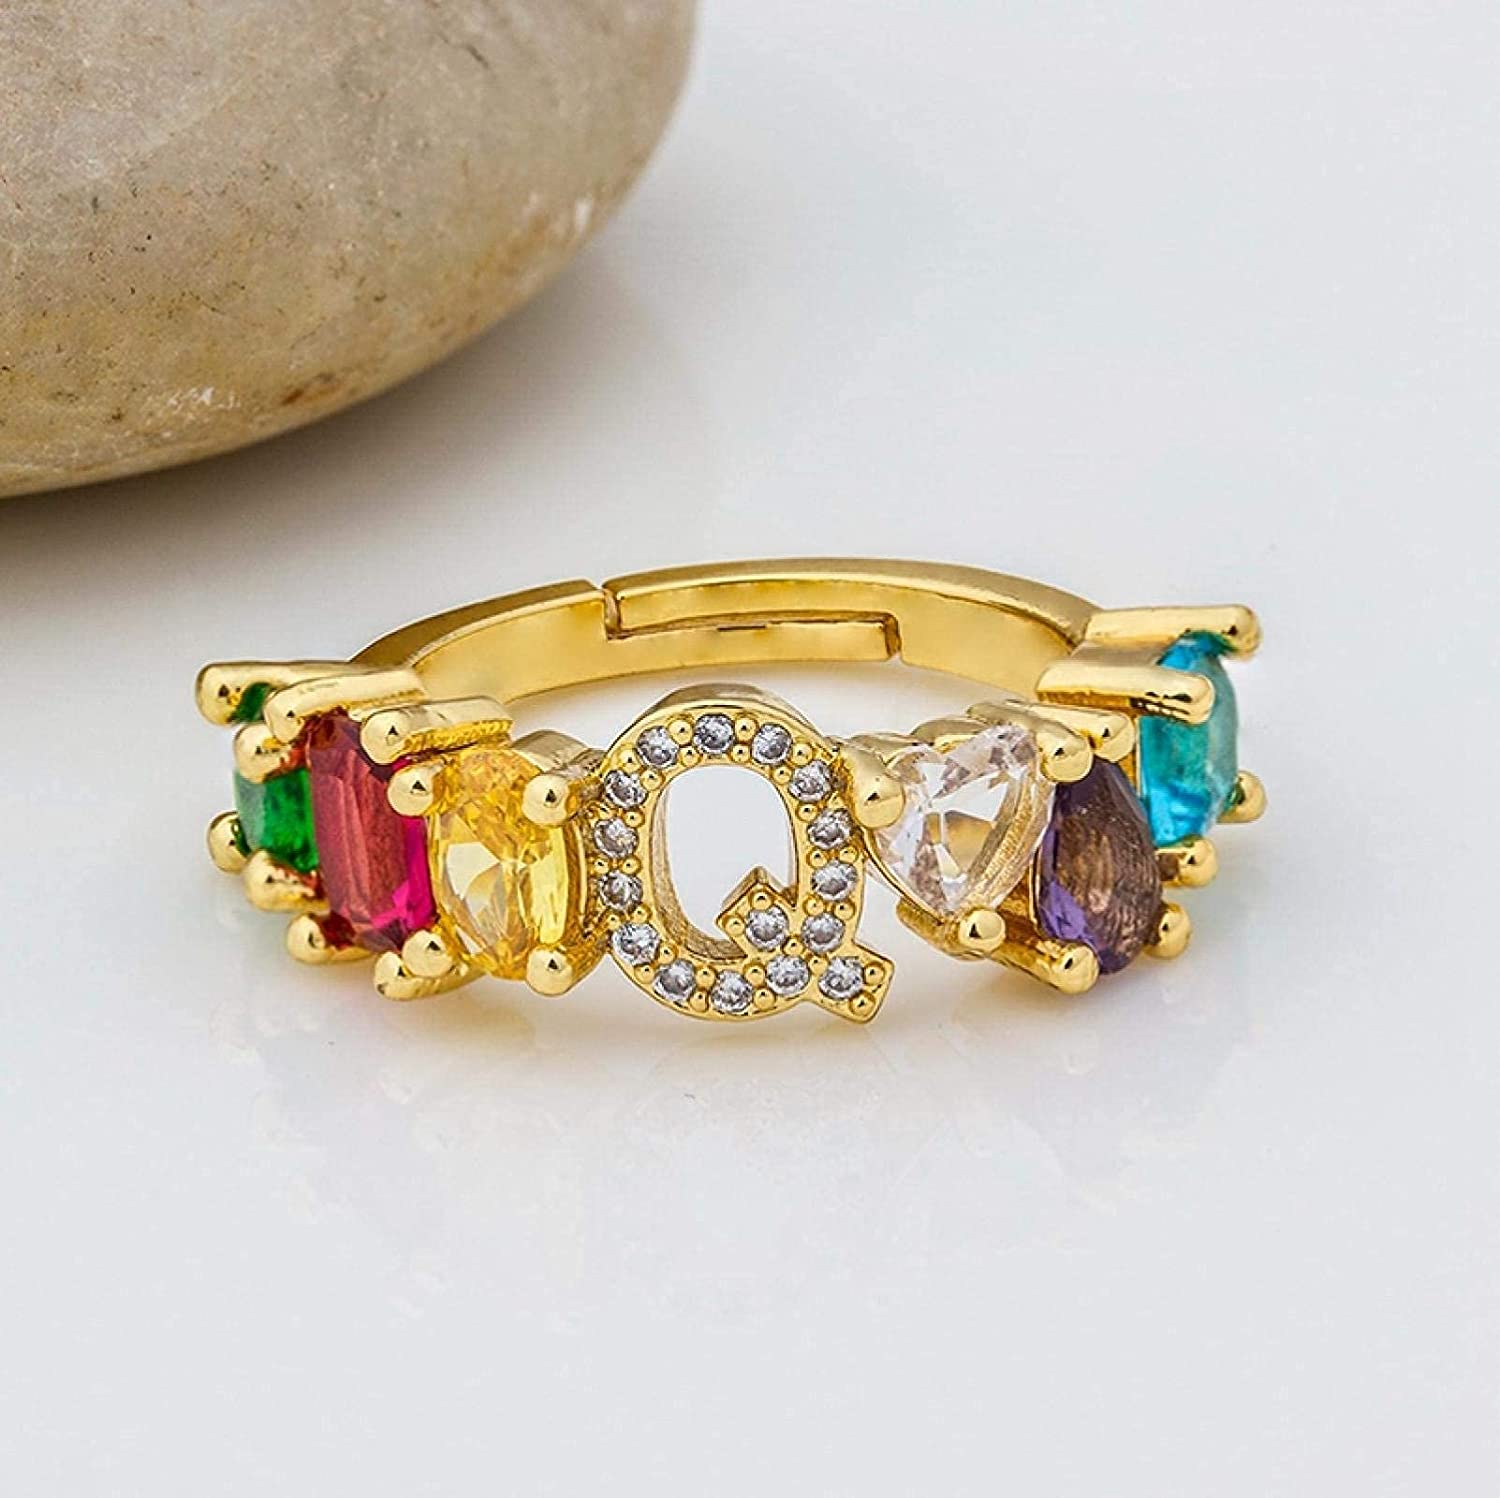 SEAL limited product Open Ring for Fashionable Women Girl Personality Gold Dainty Color Pave